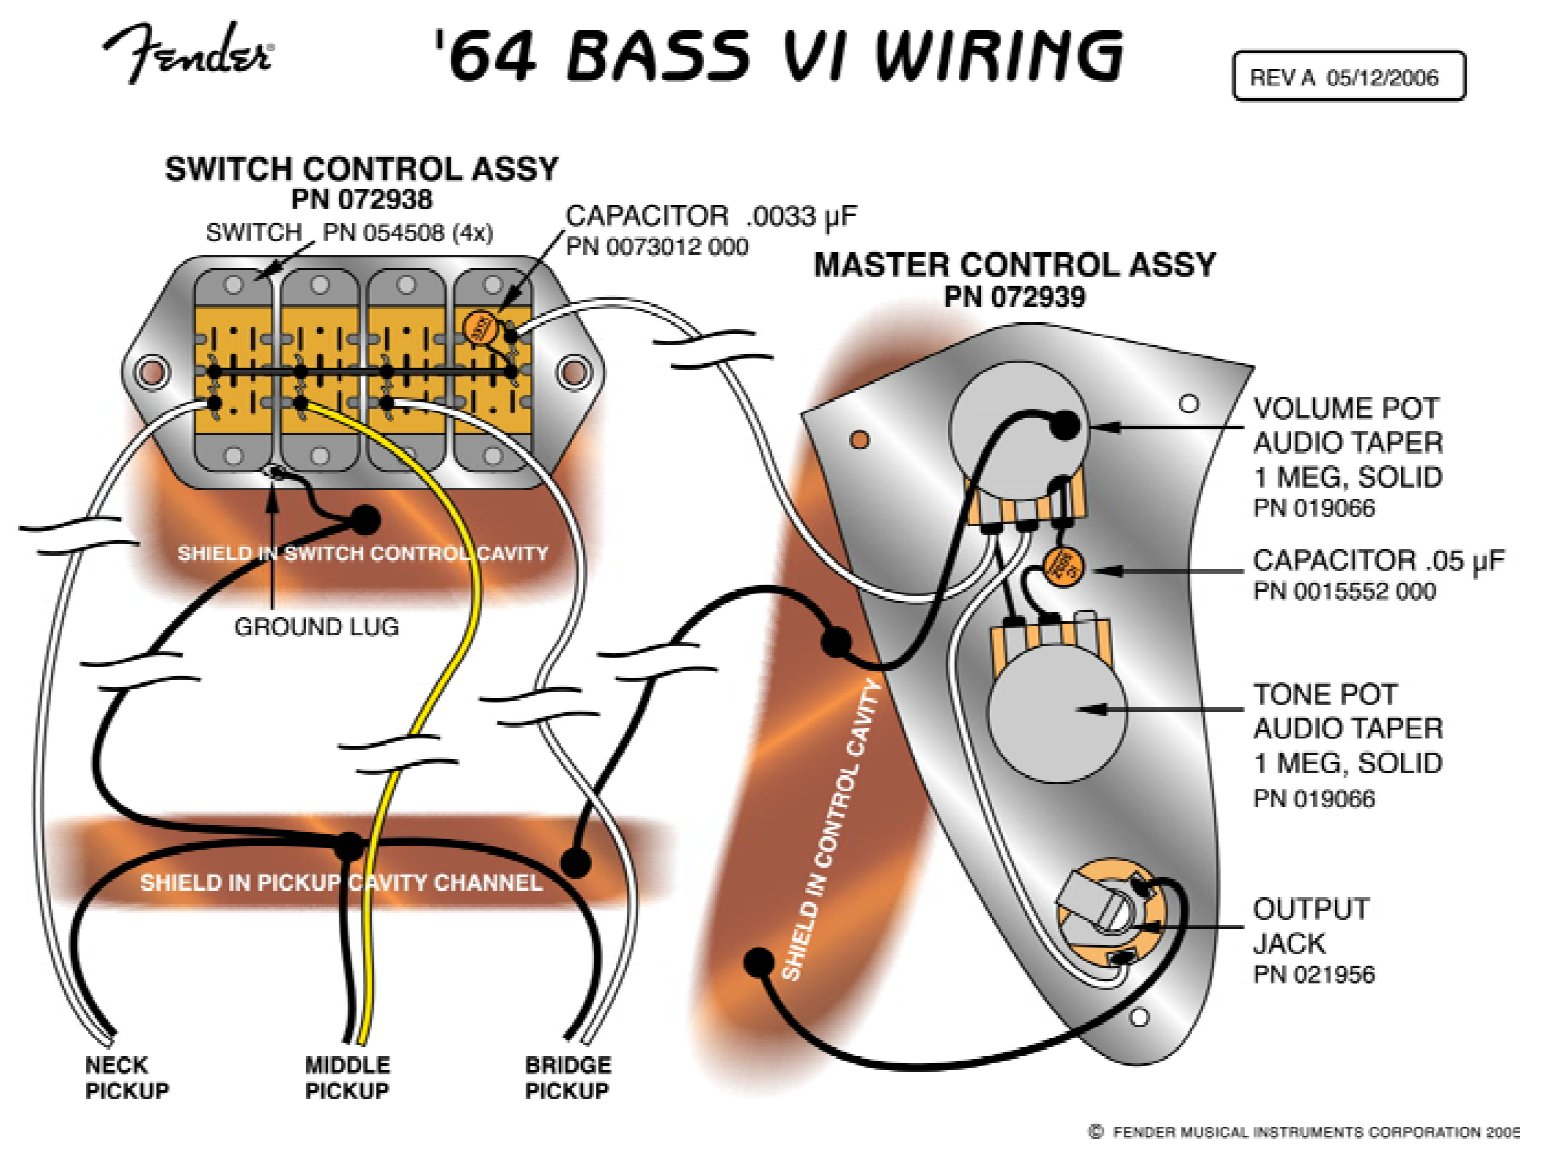 Wiring diagram for 64 fender jaguar readingrat wiring diagram for fender mustang the wiring diagramwiring diagramwiring diagram for asfbconference2016 Images